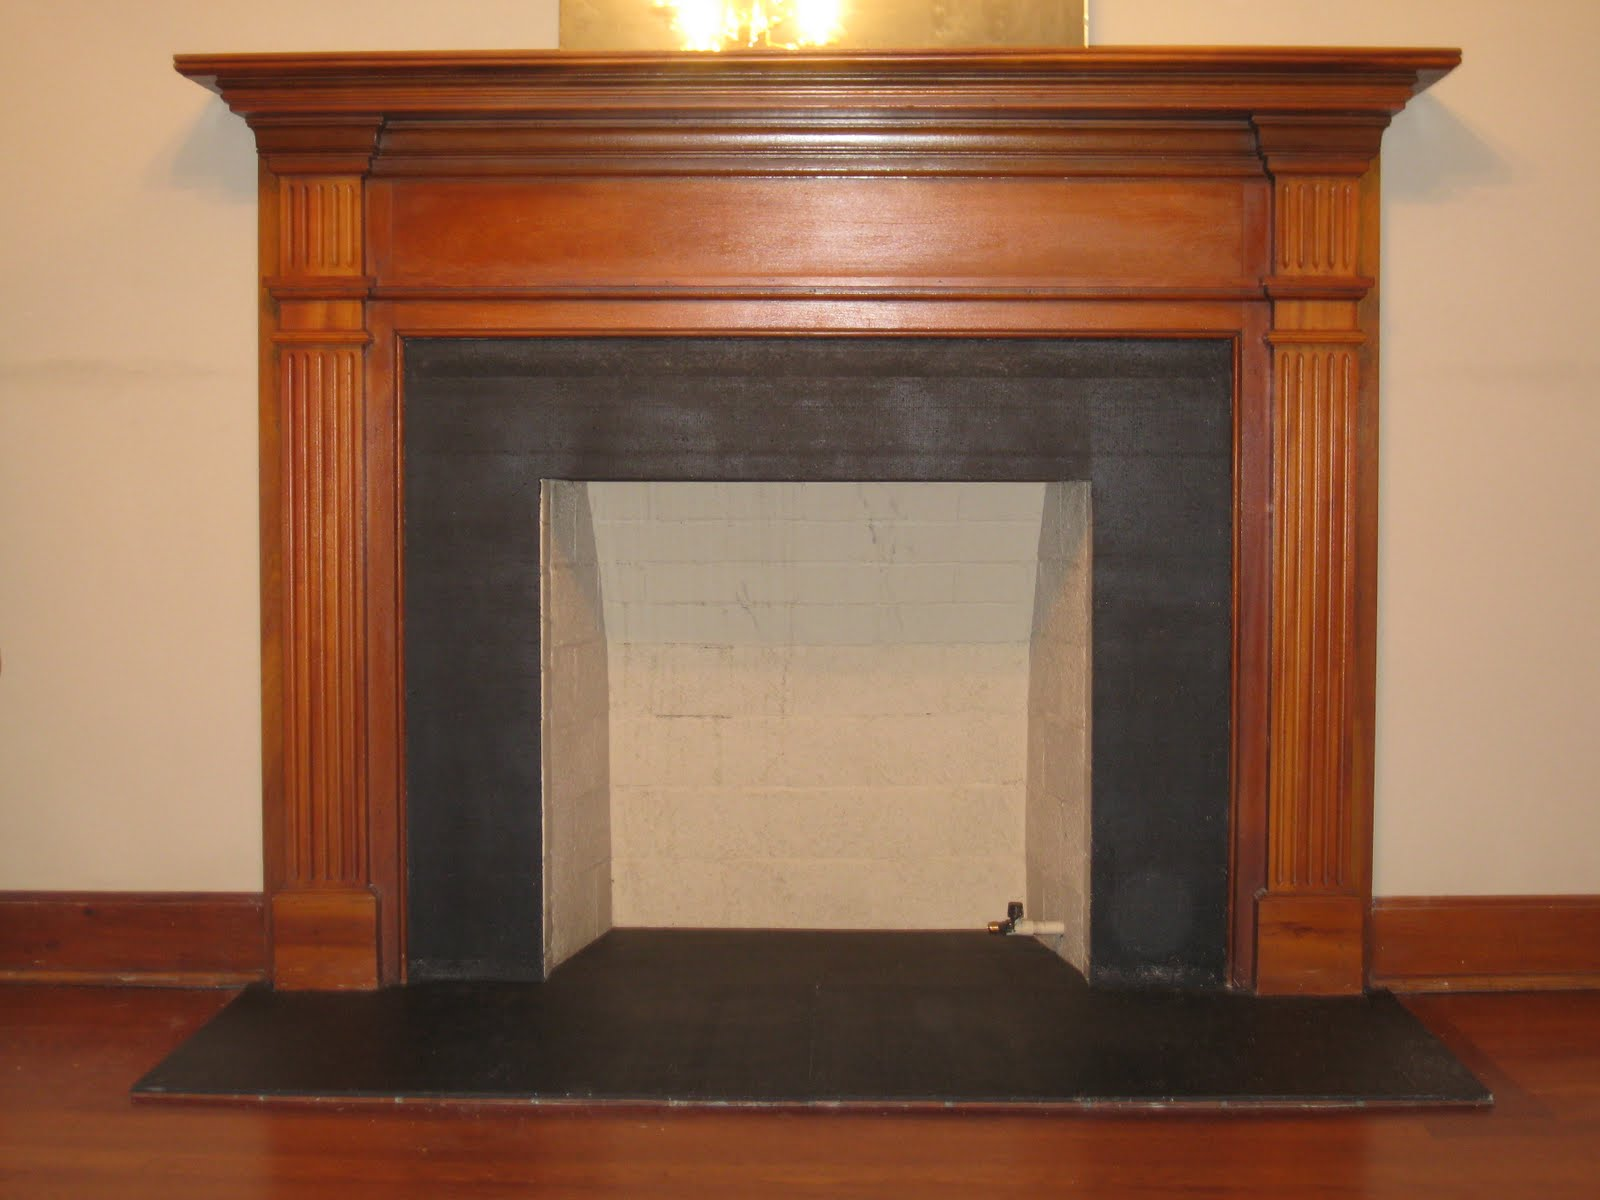 Destination Seaborn: No Writing on the Fireplace Please!!!